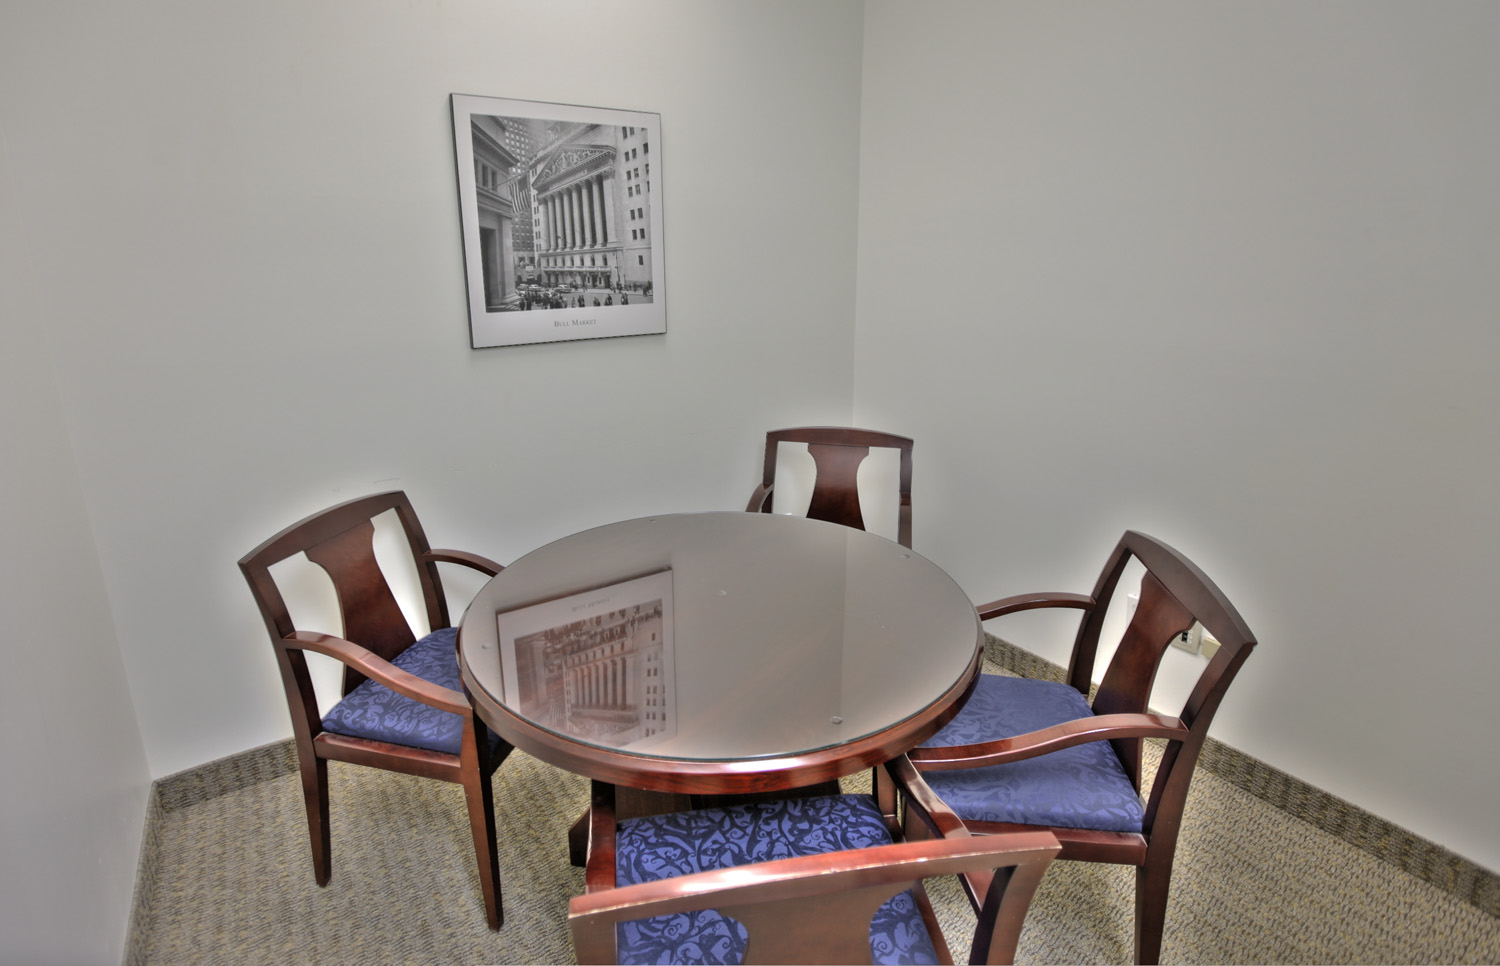 66 office furniture rental montreal level 1 conferences centers in montreal sgp Home furniture rental montreal